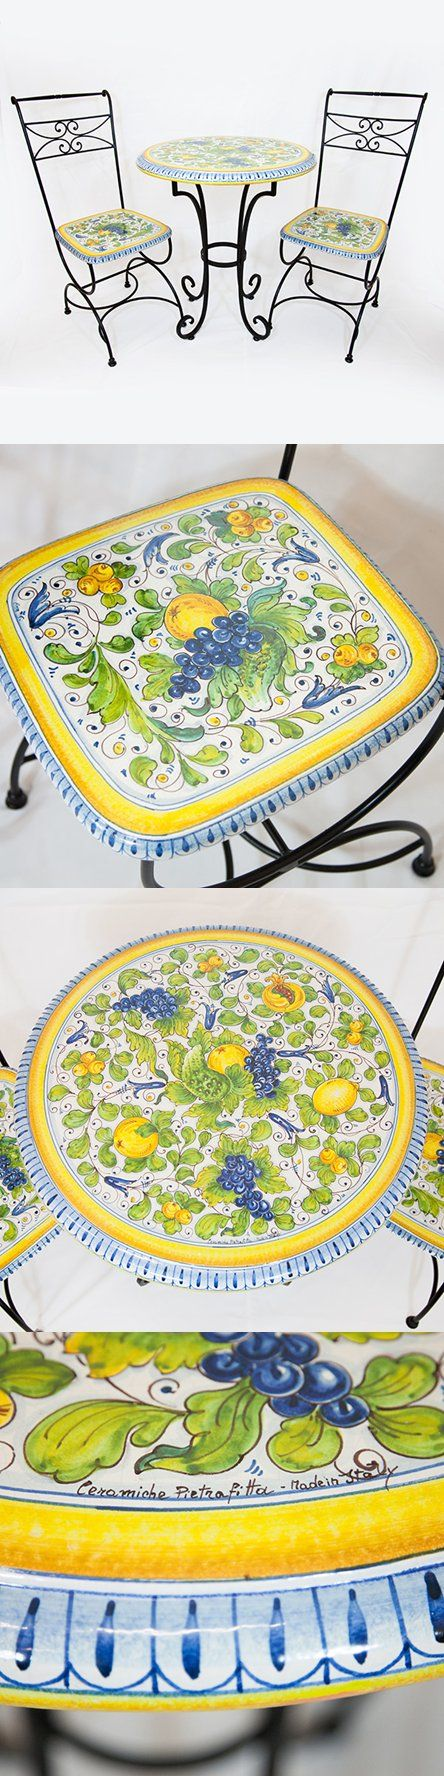 Handmade round ceramic table and chairs with lemons, pomegranates and grapes on a white background with a yellow and blue border. Click on the image to learn more about this product.